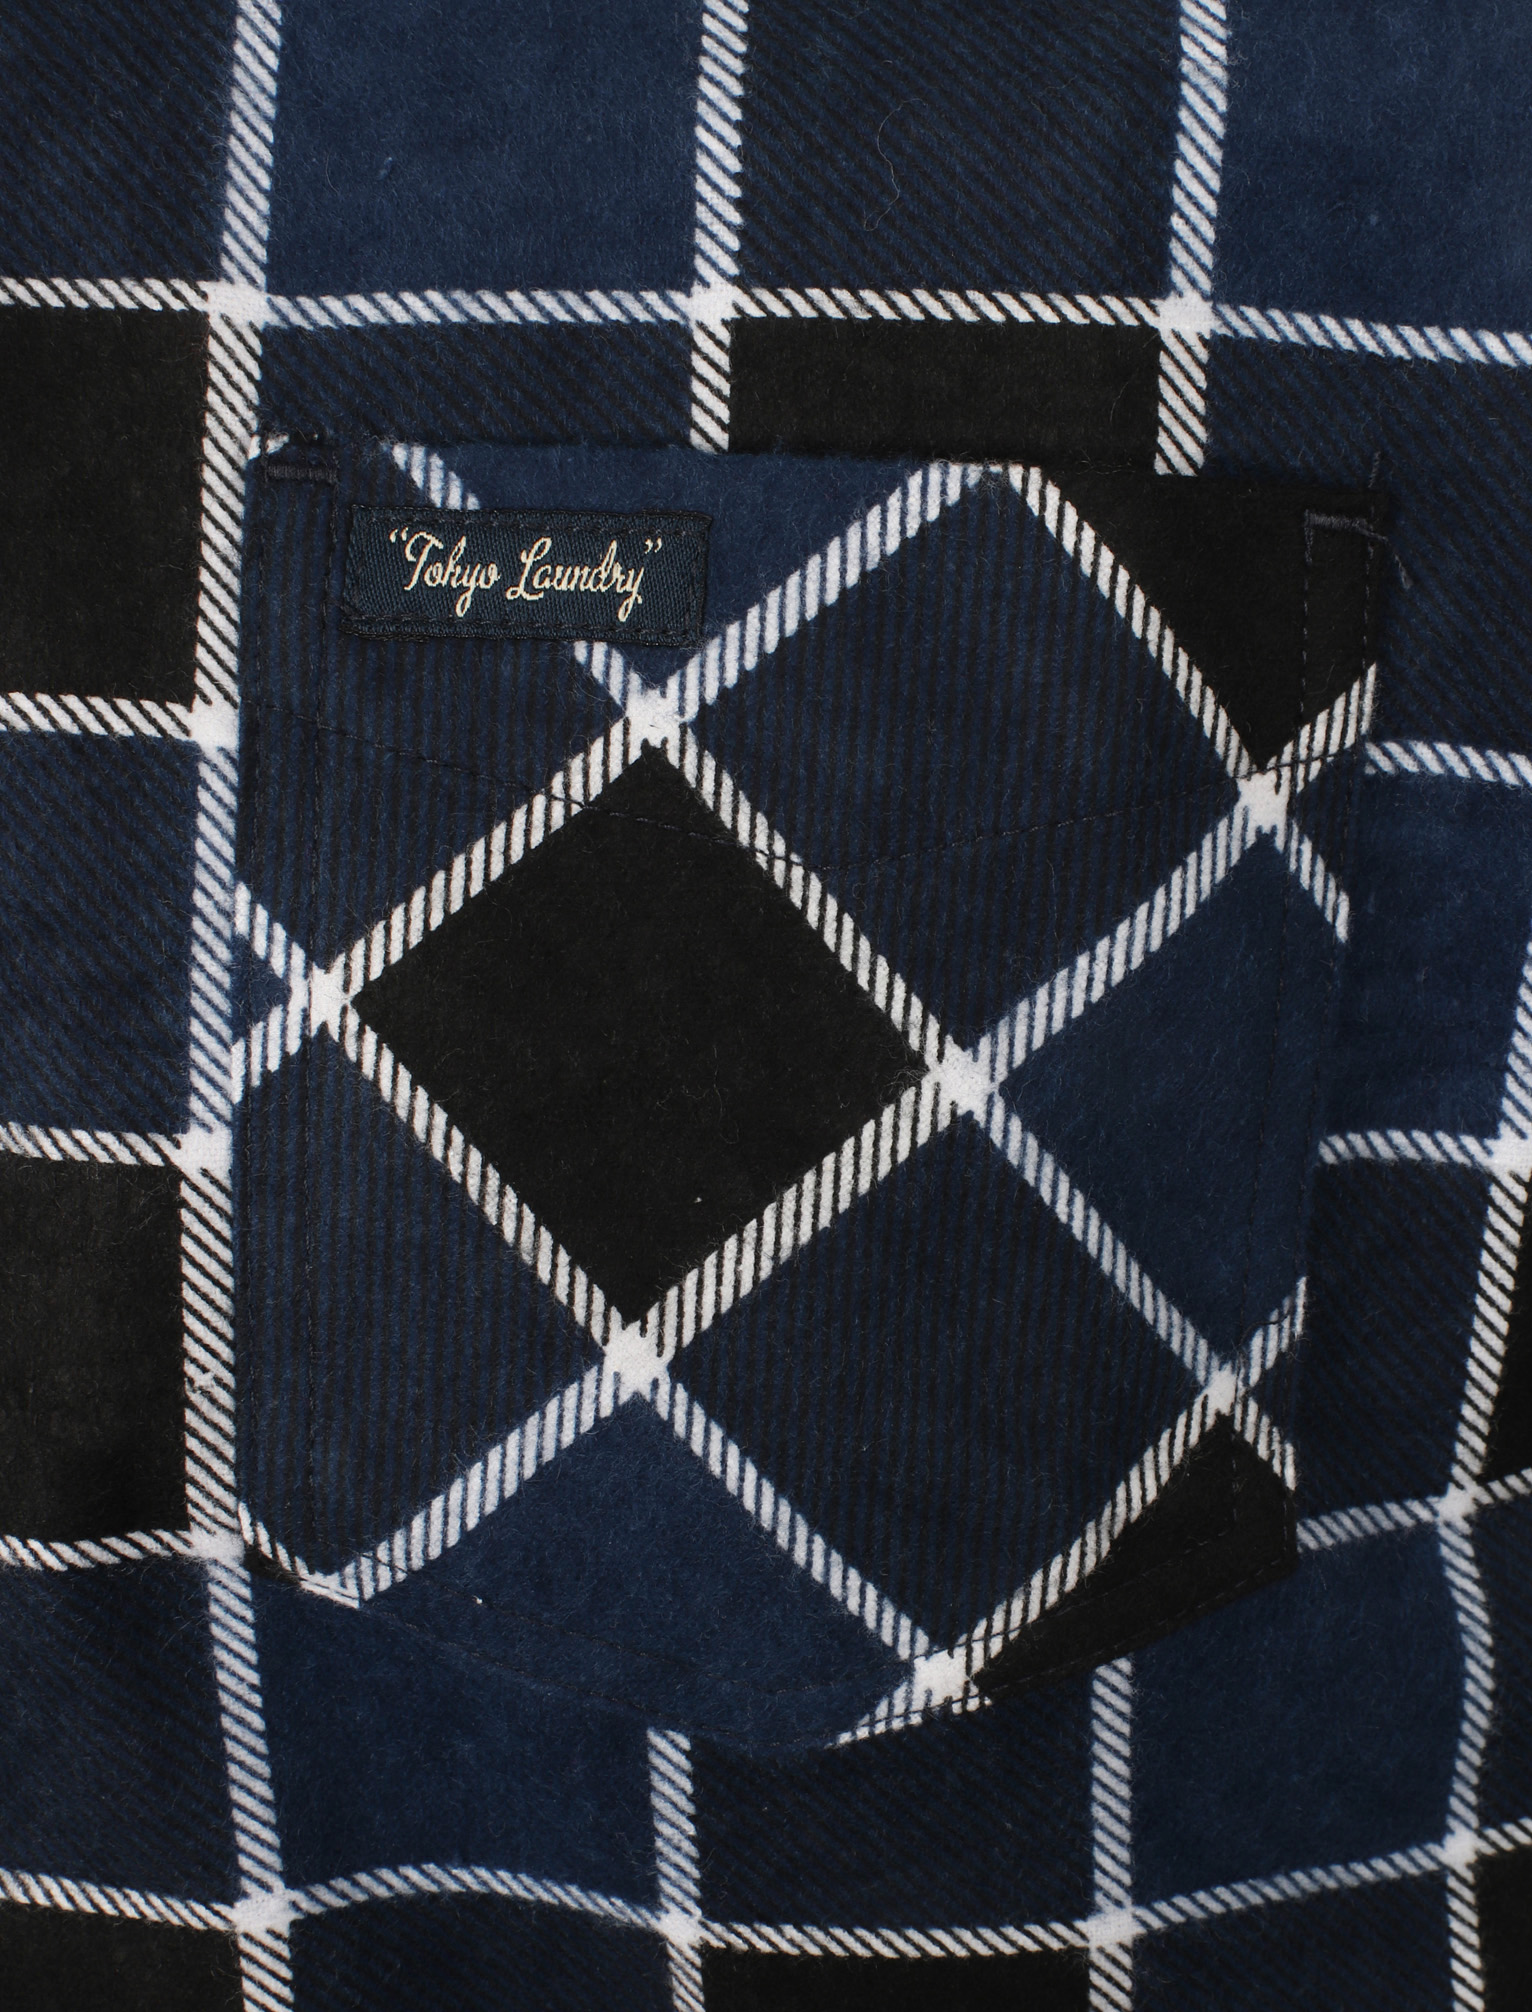 New-Mens-Tokyo-Laundry-Cotton-Long-Sleeve-Checked-Flannel-Shirt-Size-S-XXL thumbnail 5